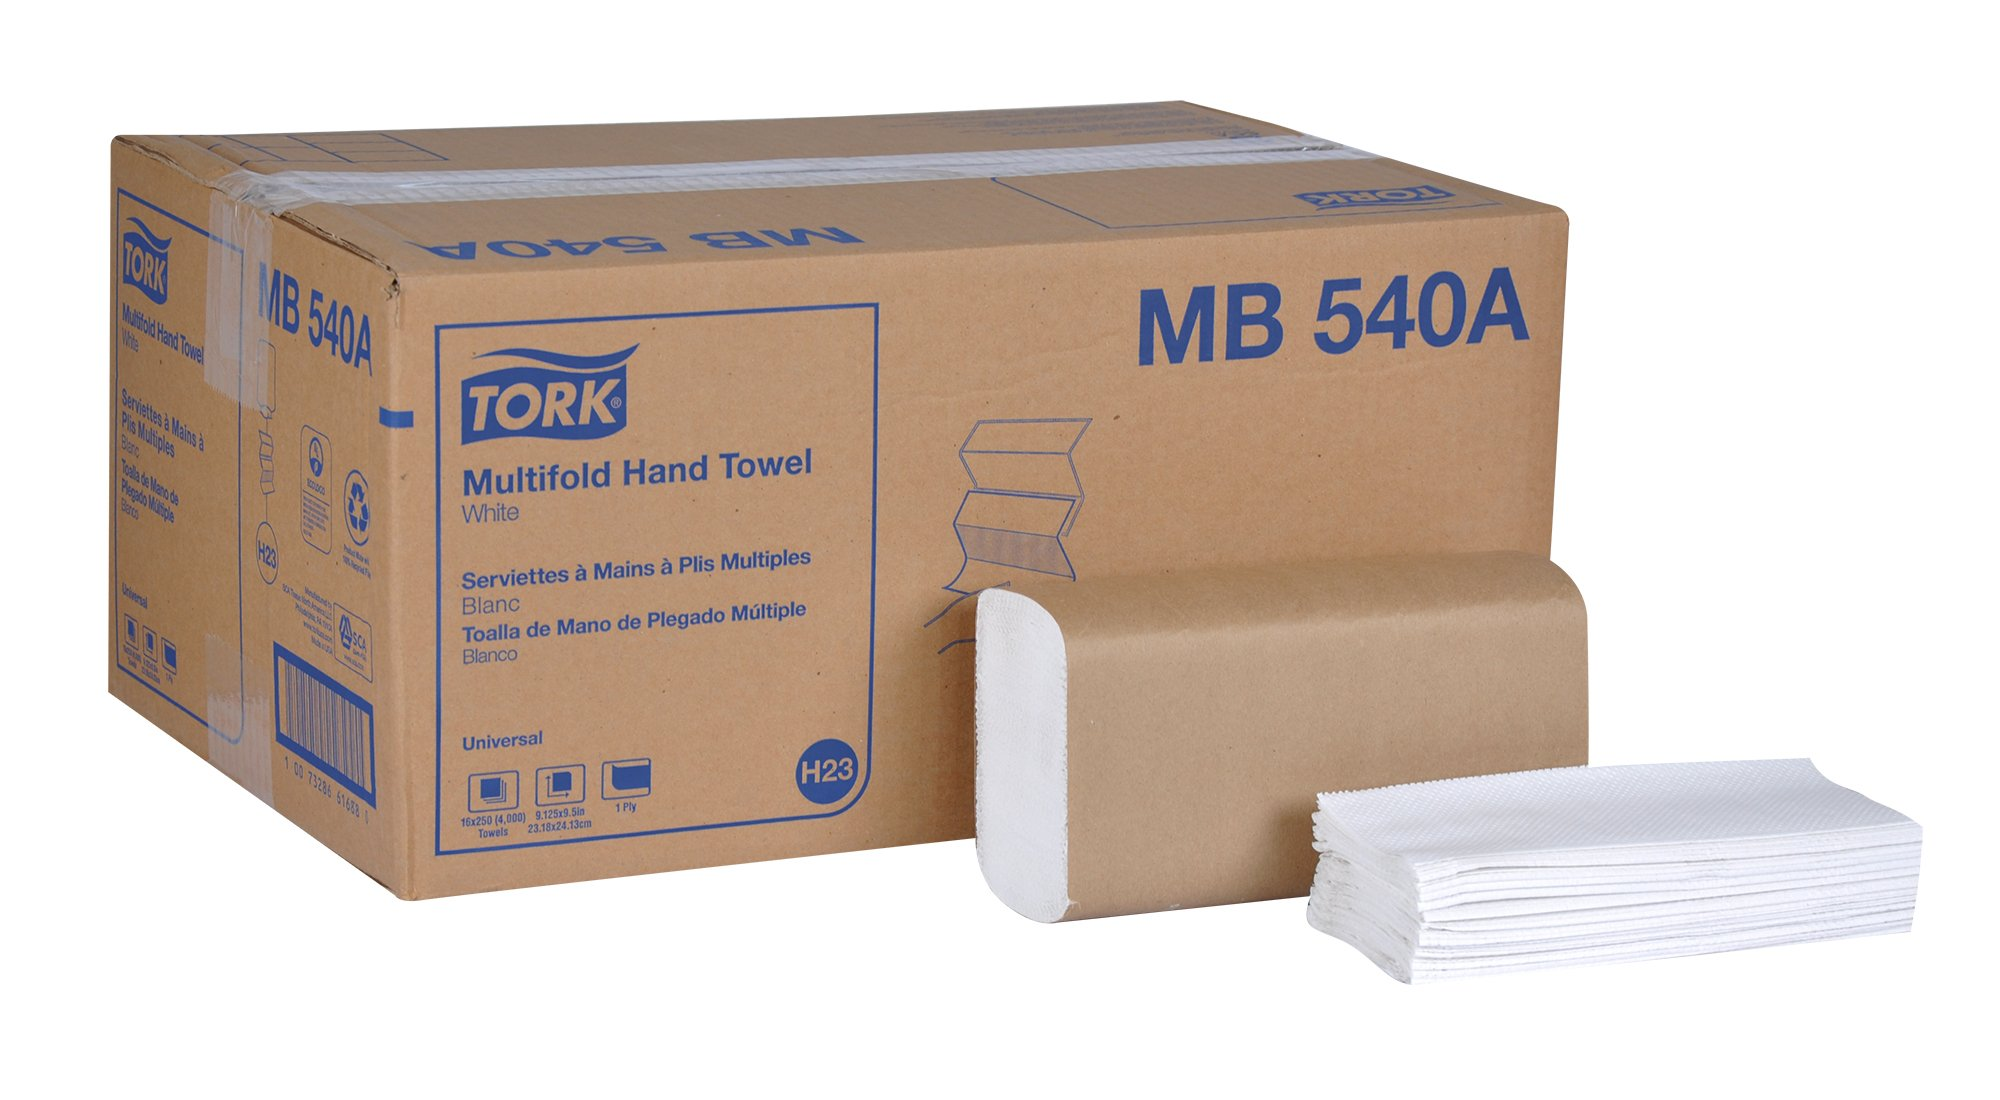 Tork Universal MB540A Multifold Paper Hand Towel, 1-Ply, 9.5'' Width x 9.13'' Length, White, (Case of 16 Packs, 250 per Pack, 4,000 Towels)